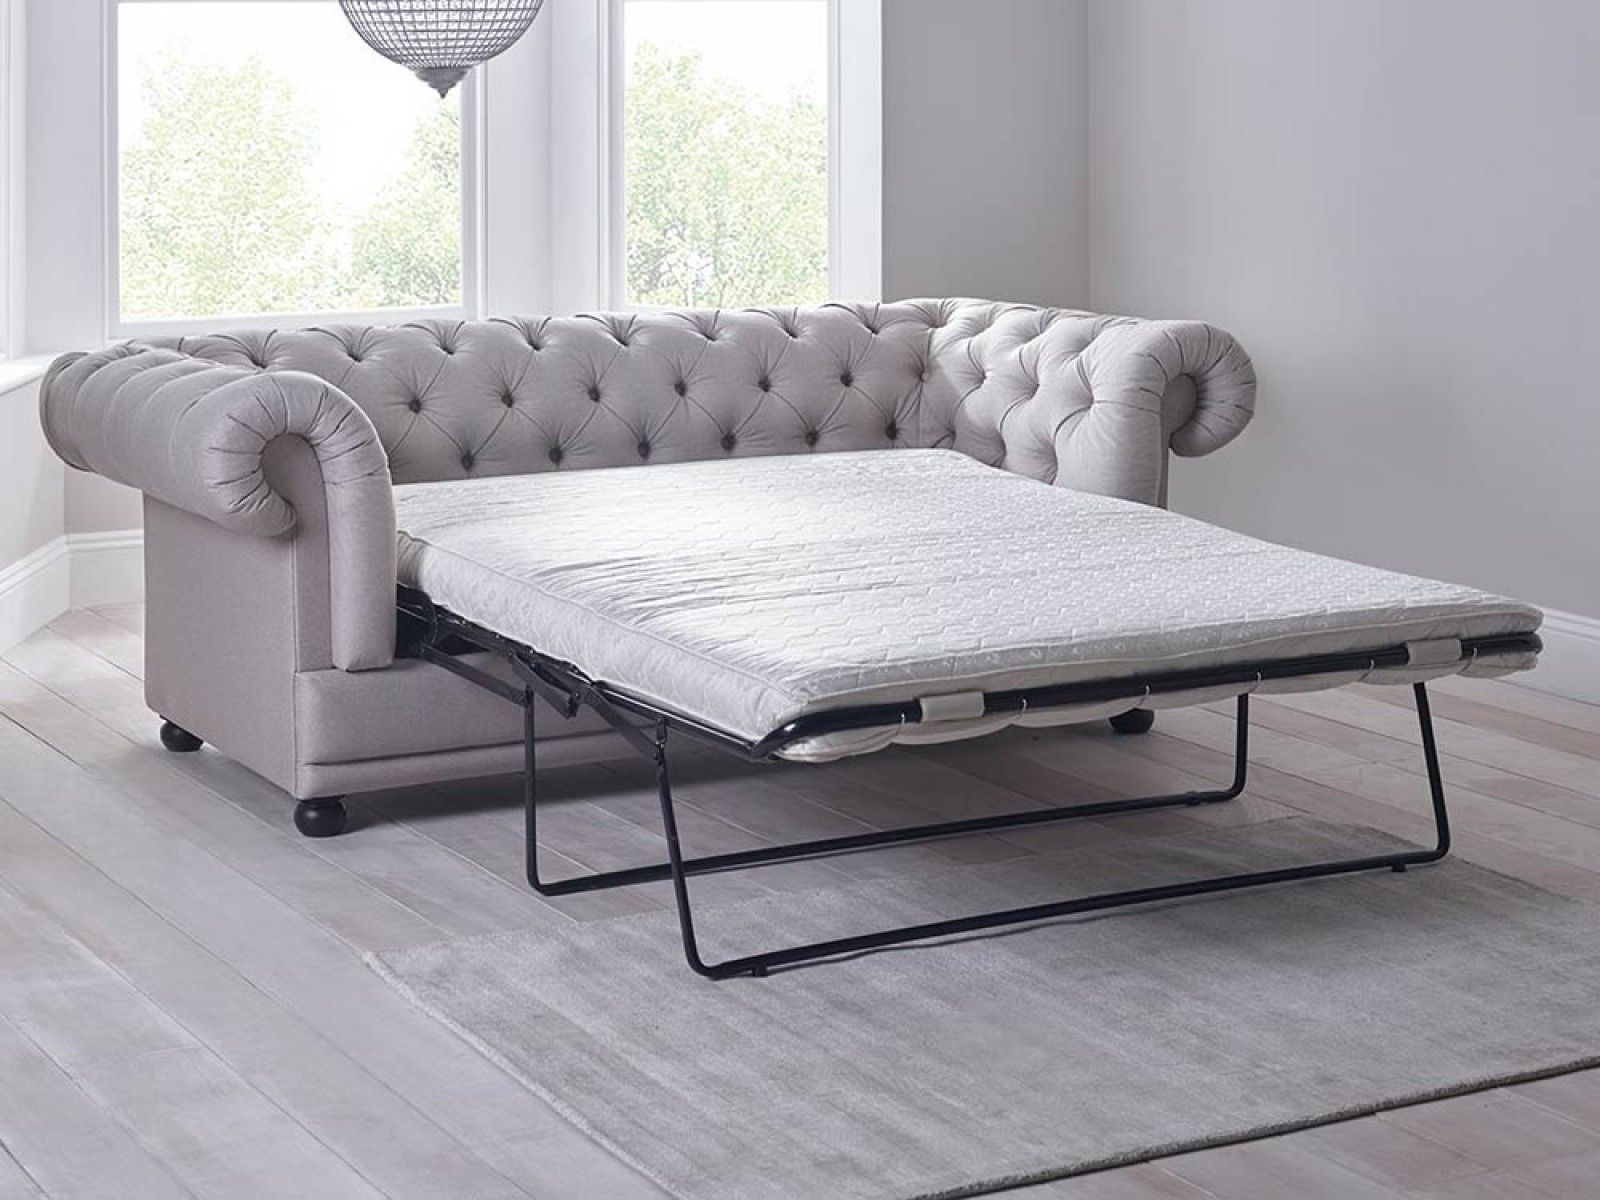 Cara Double Sofa Bed In Grey A Chesterfield By Day And